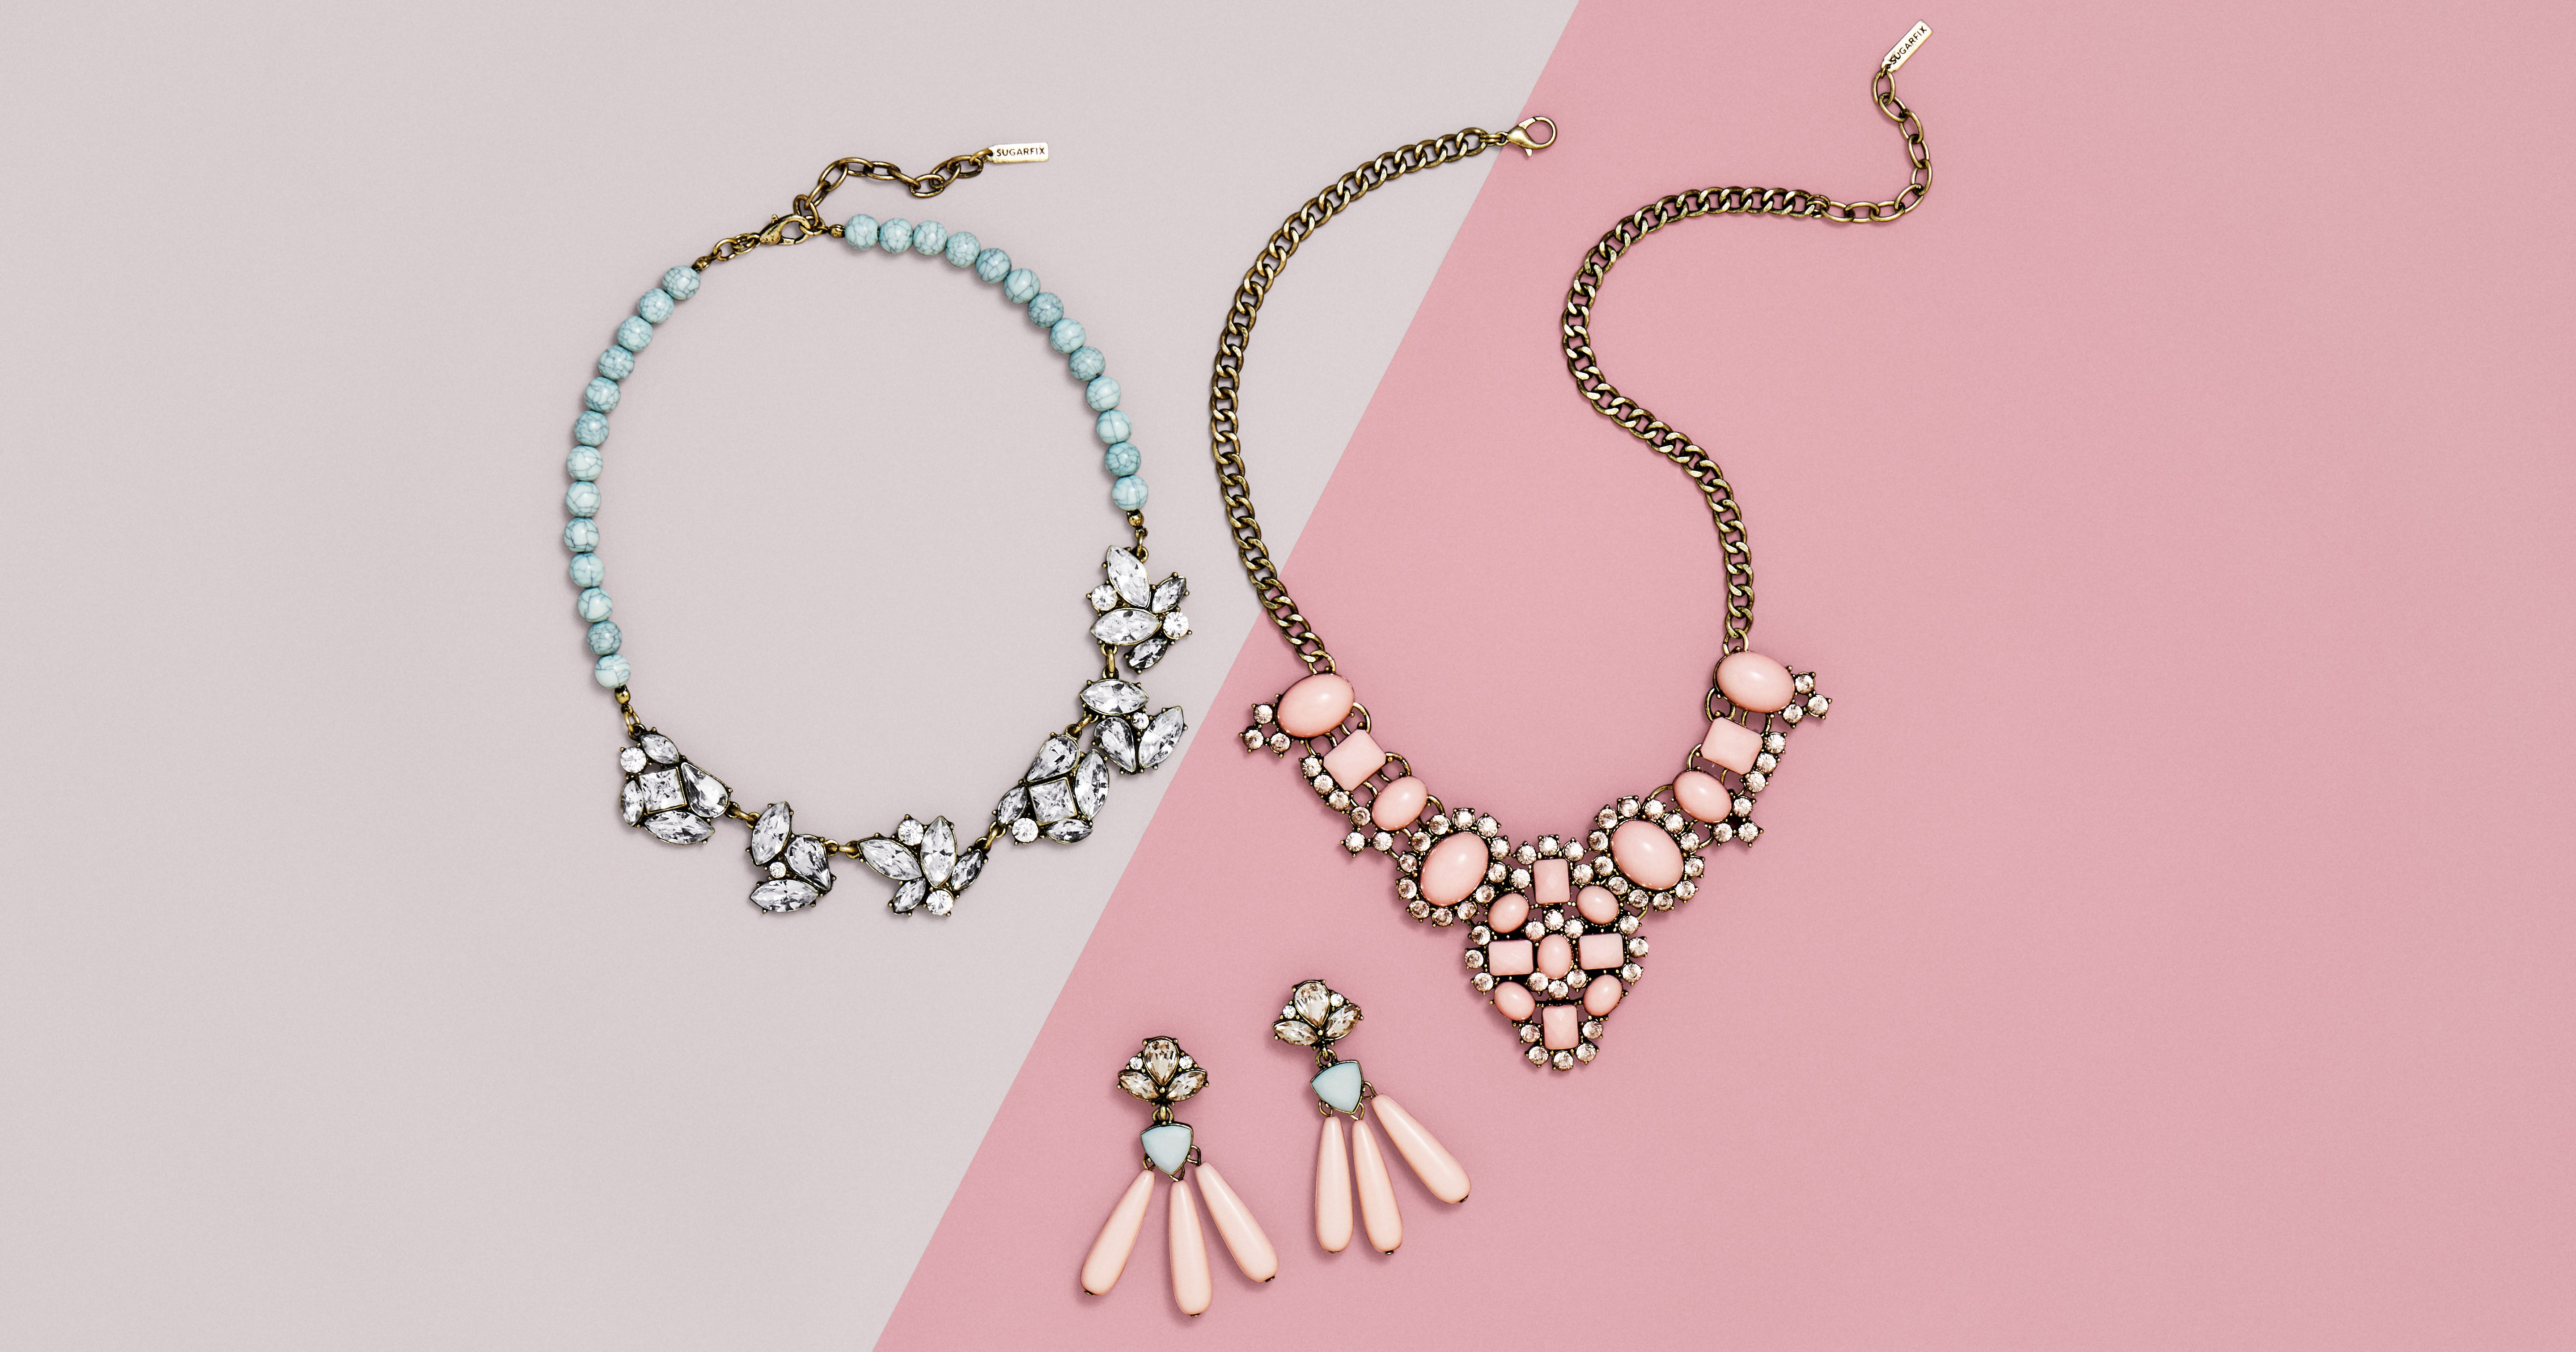 0682bce0081f7 Target BaubleBar Jewelry Collection Launch Pieces